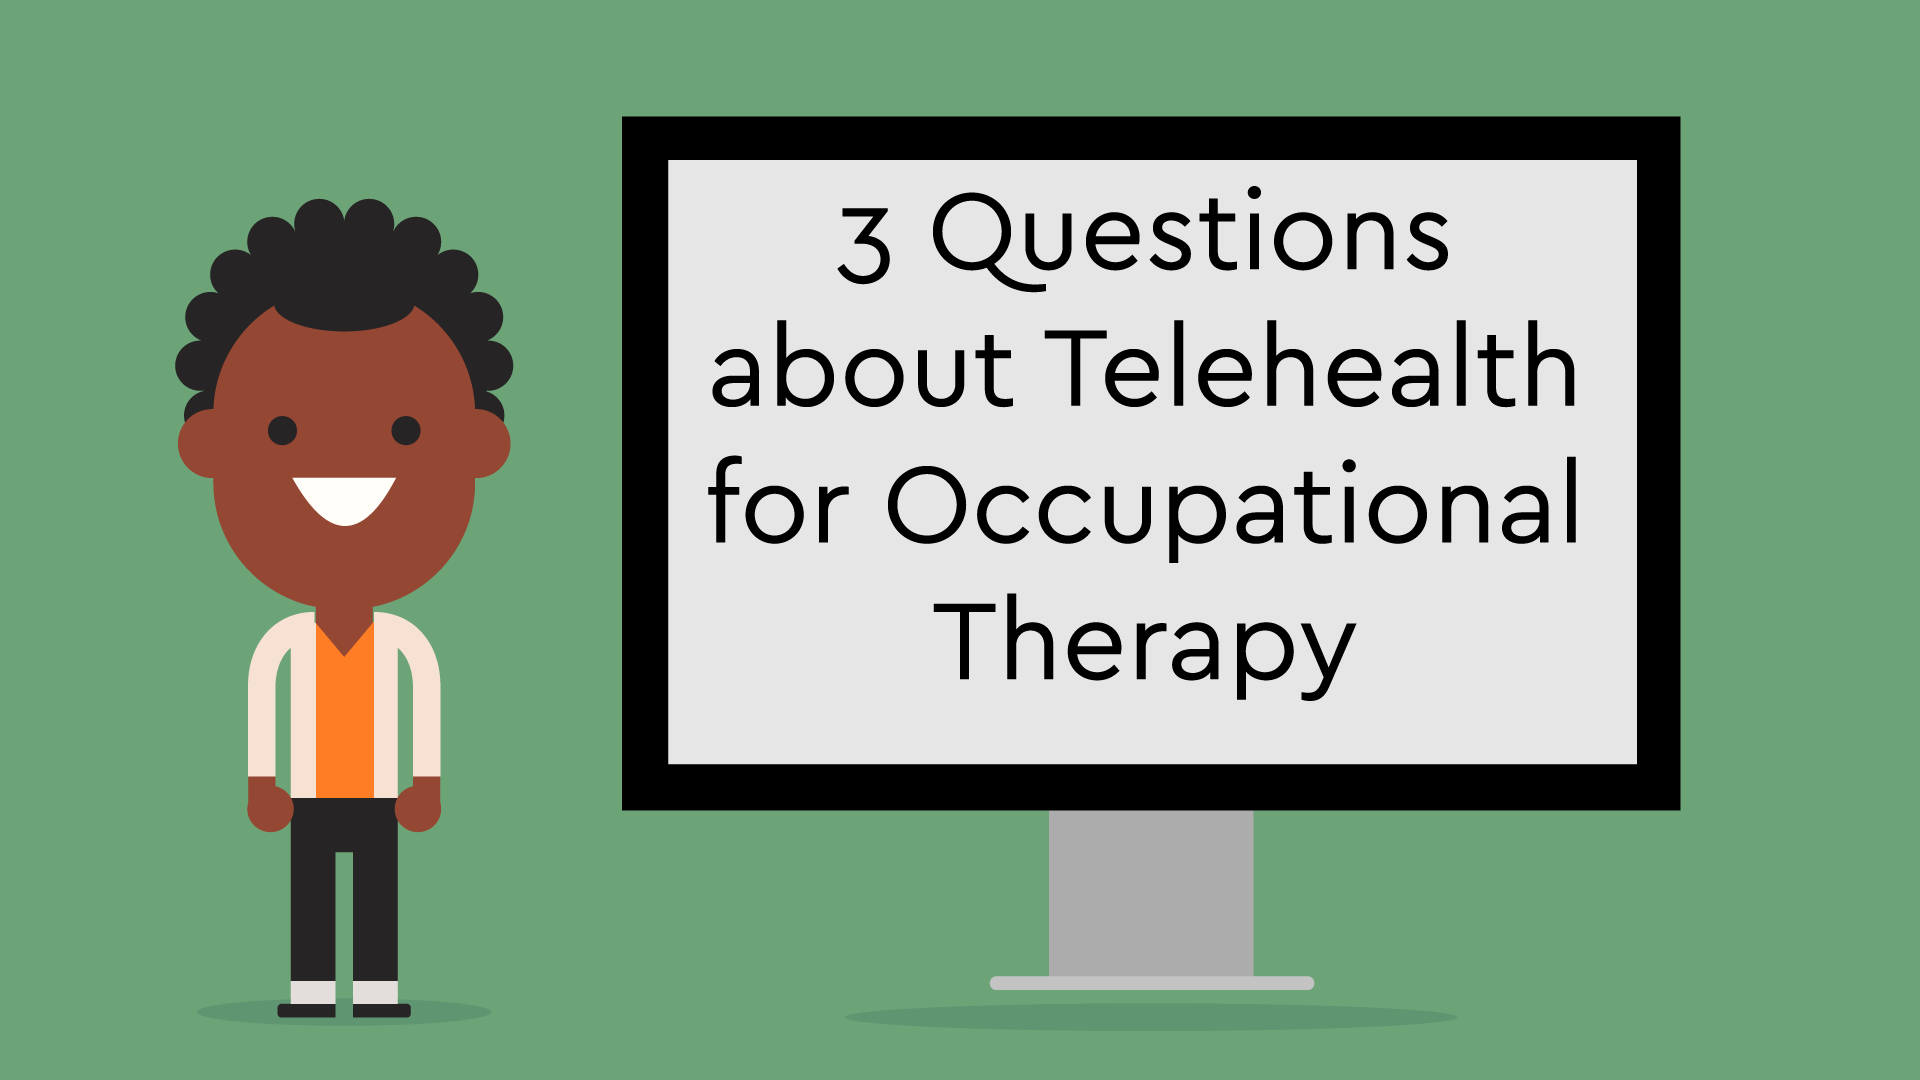 telehealth for occupational therapy